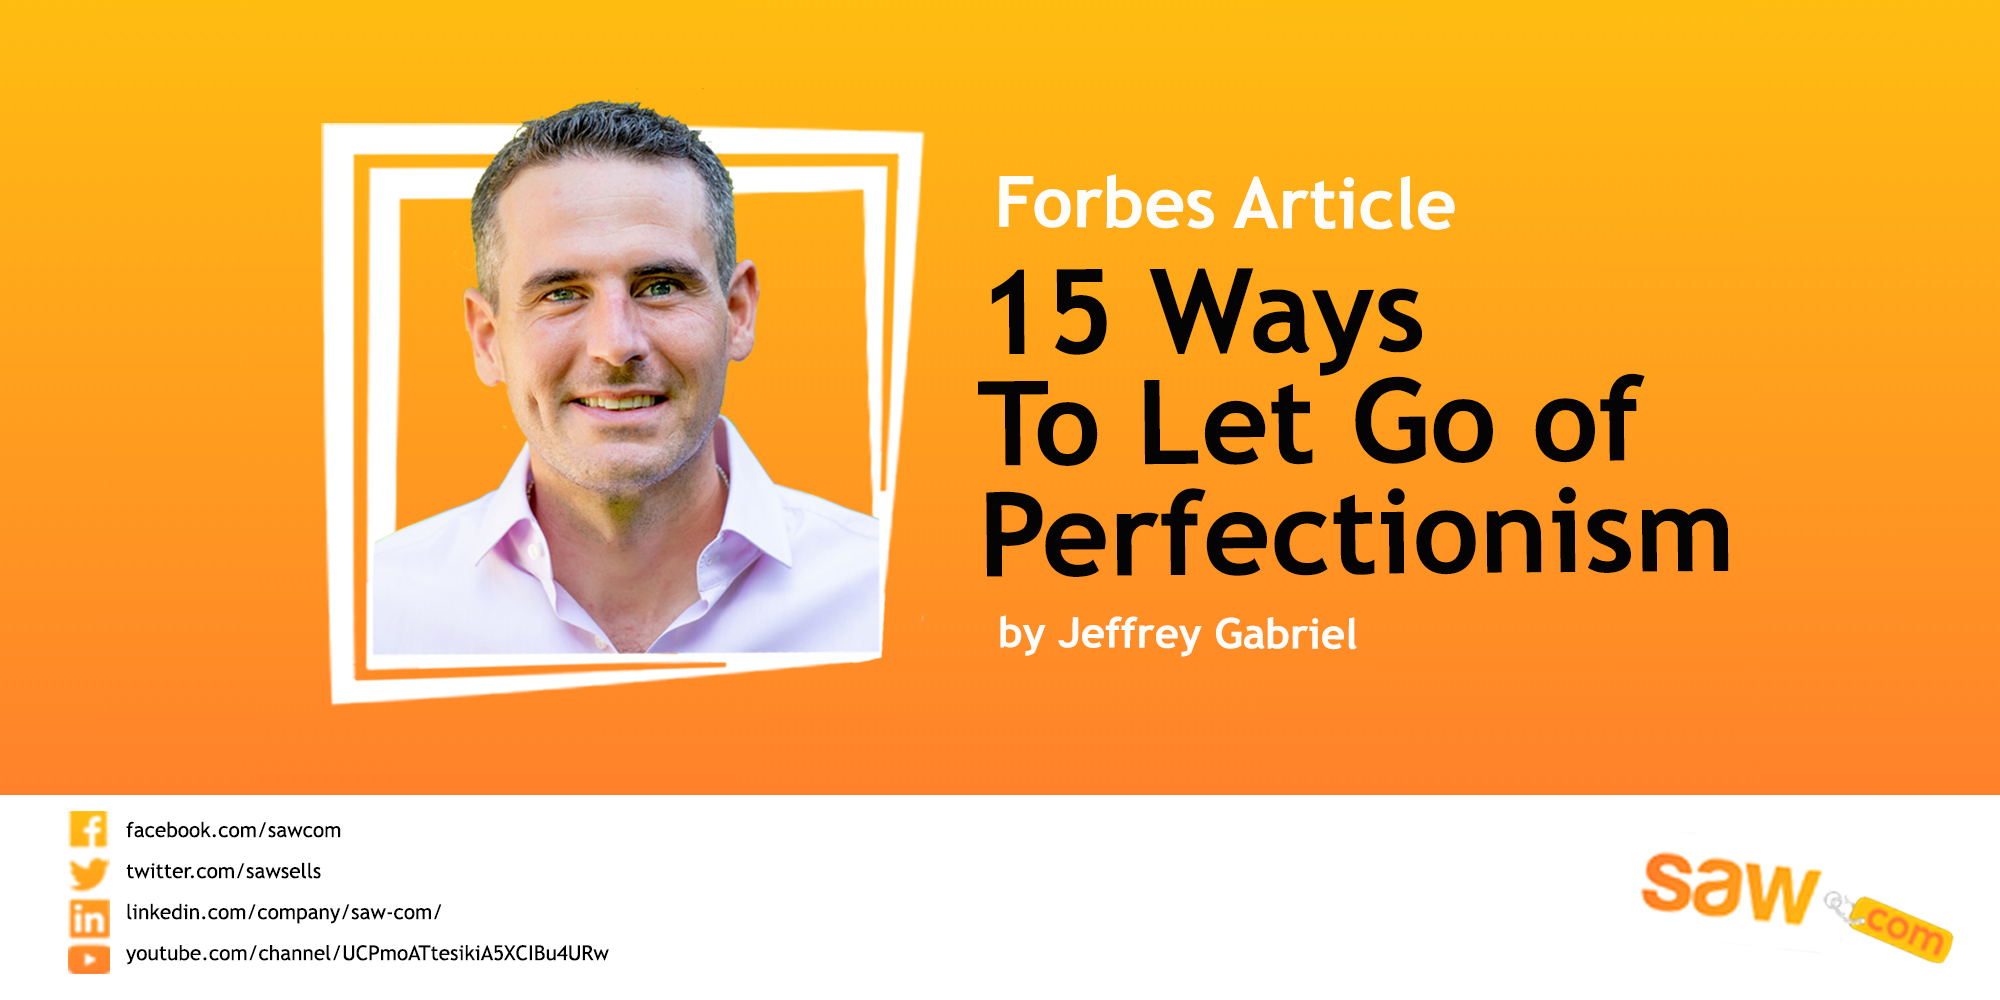 Forbes Group Post – 15 Ways To Let Go